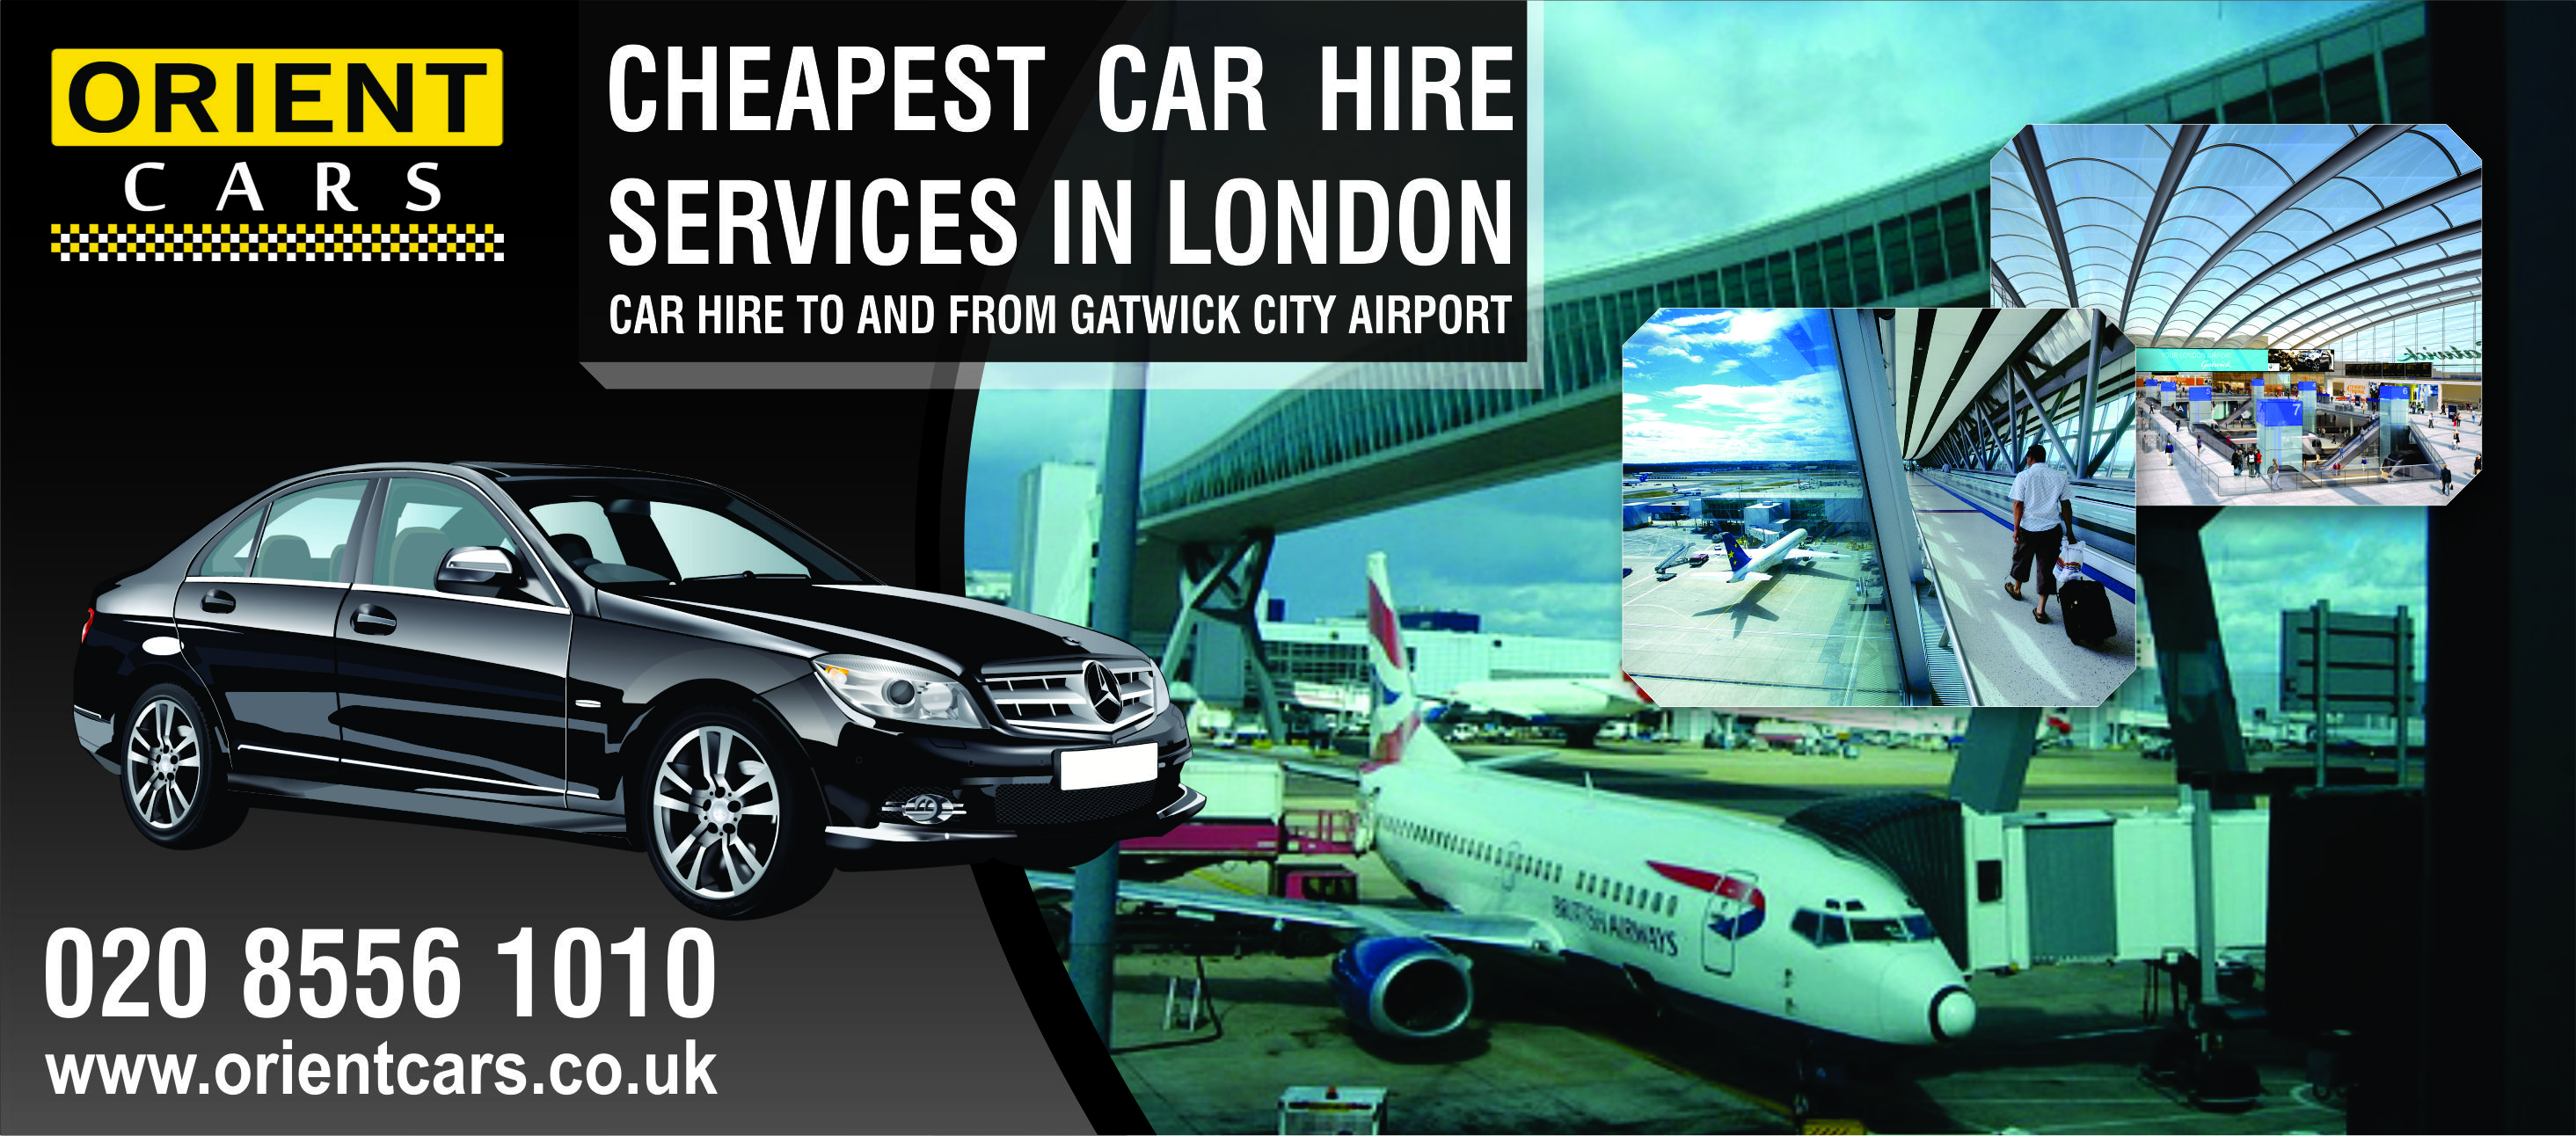 Cheap Taxis And Minicabs Transfers Services In Portsmouth We Provide